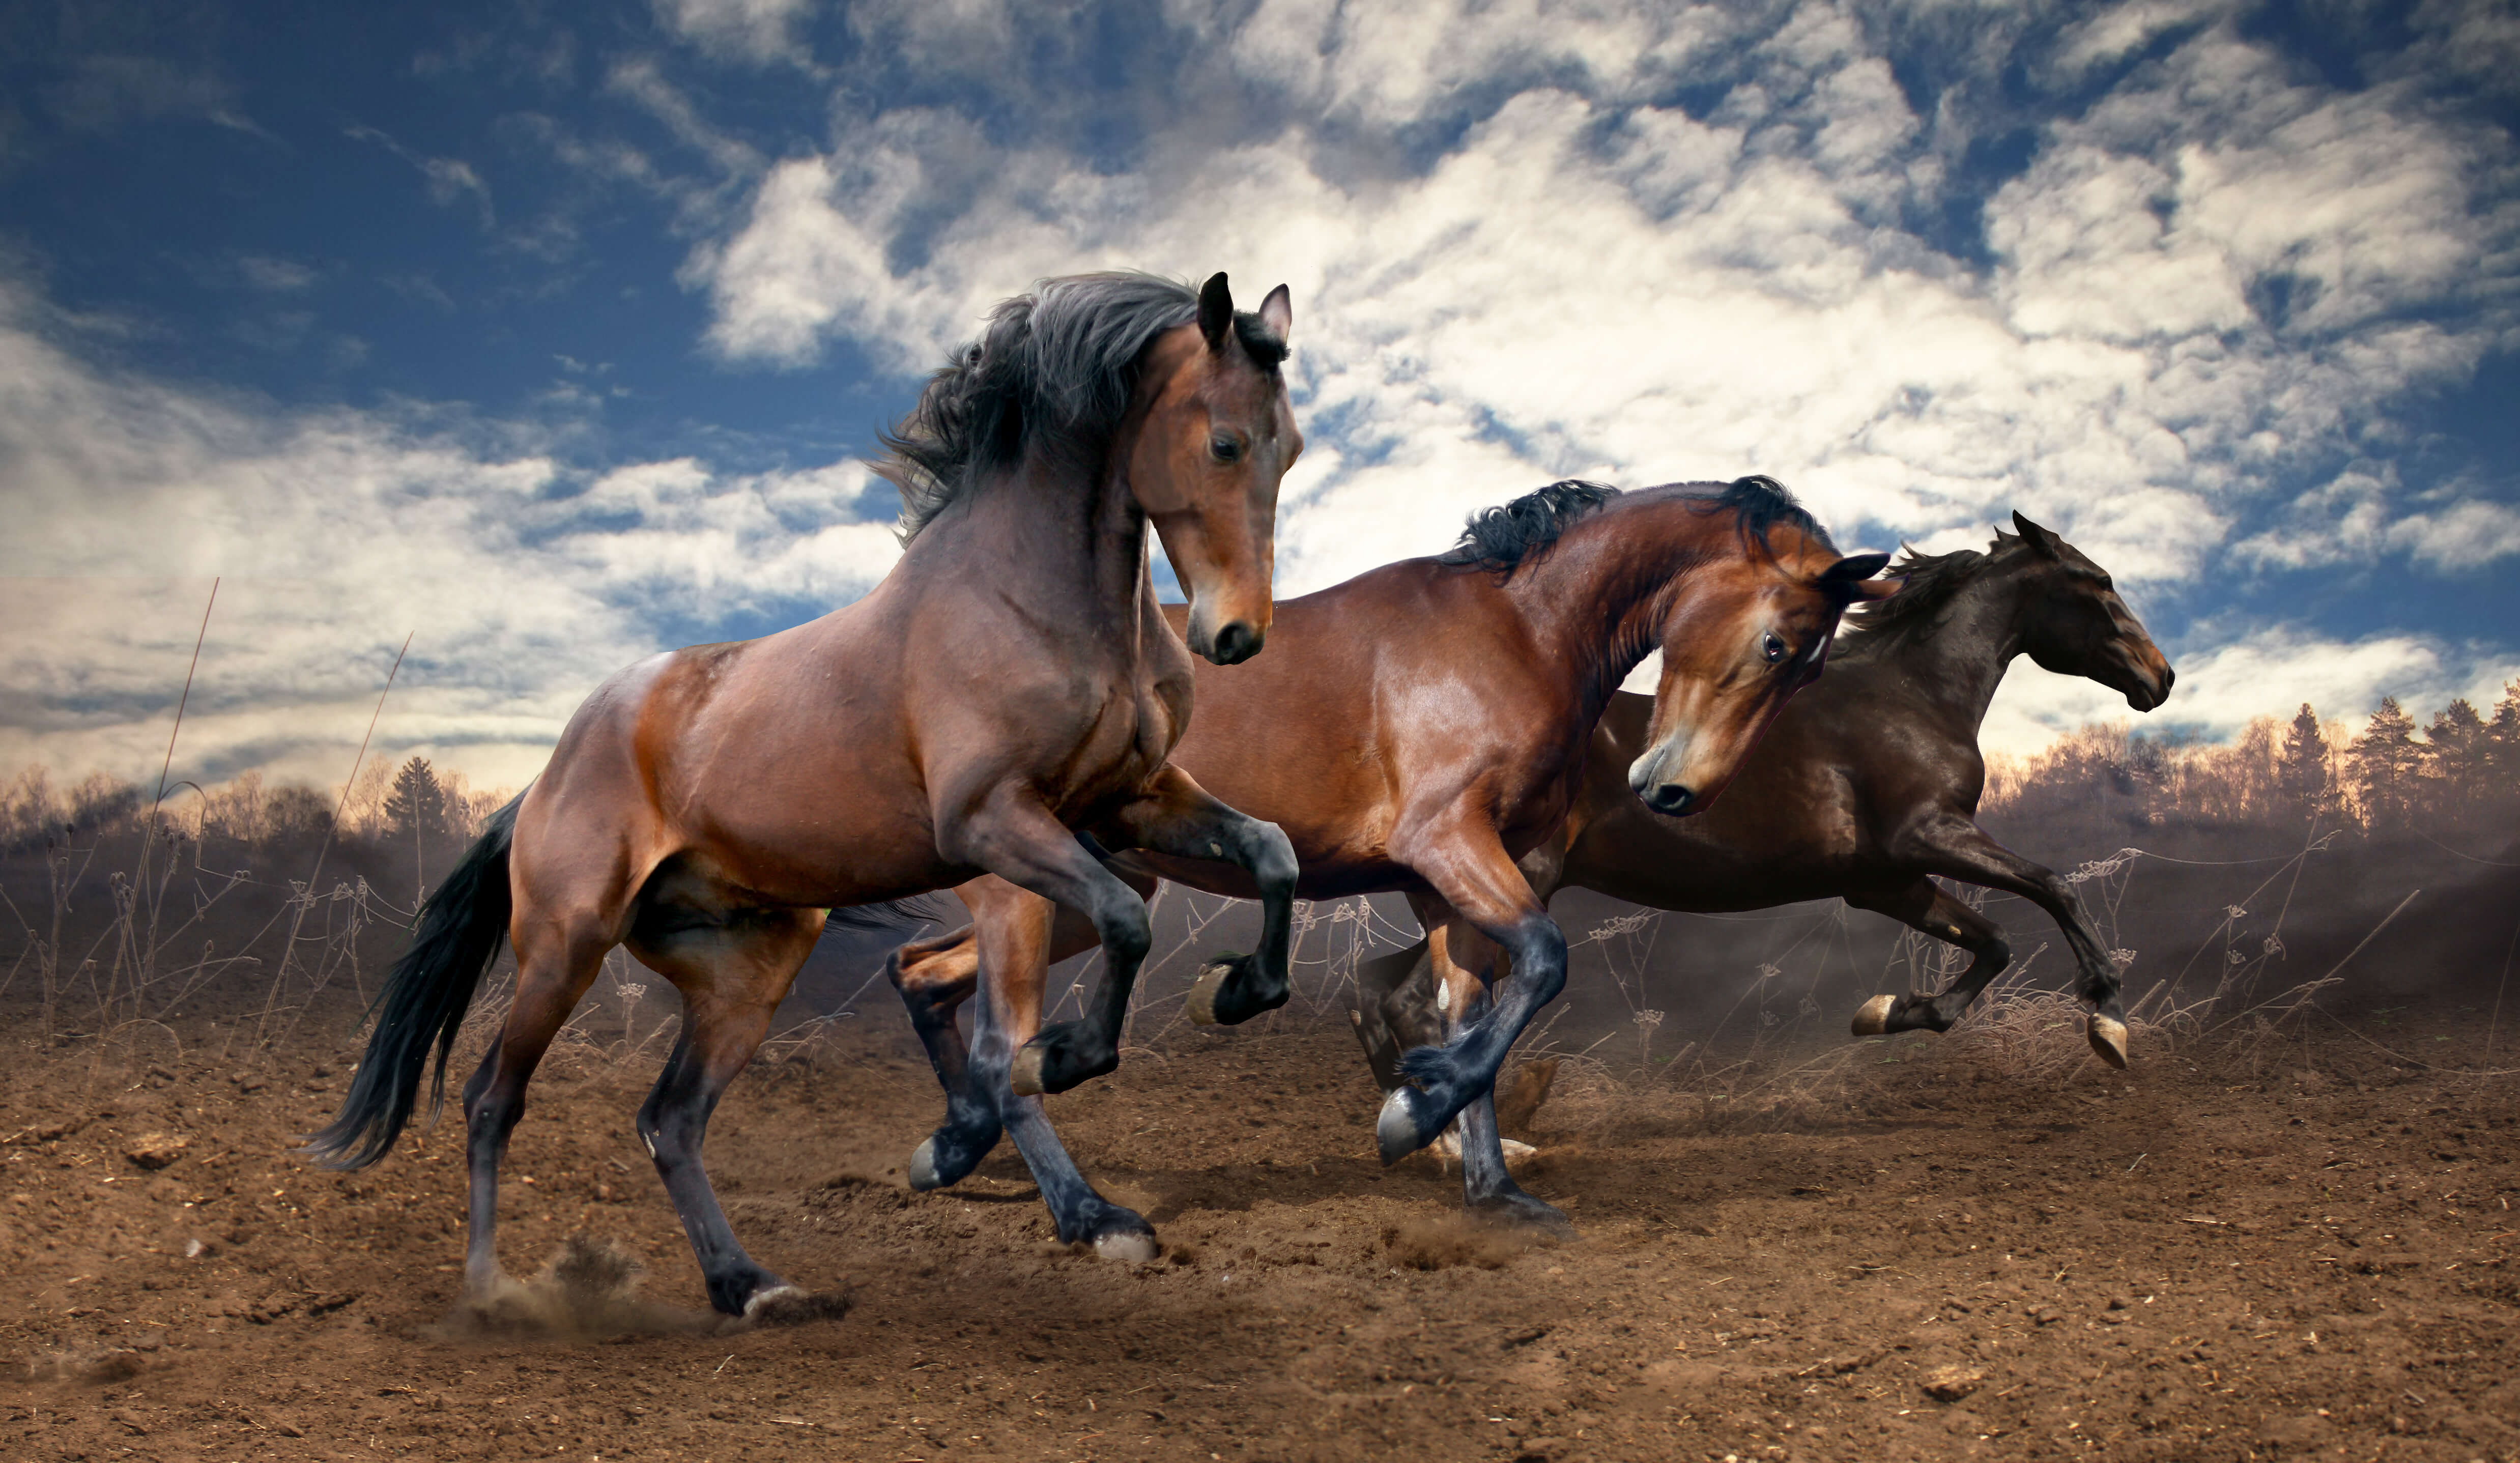 Three horses running